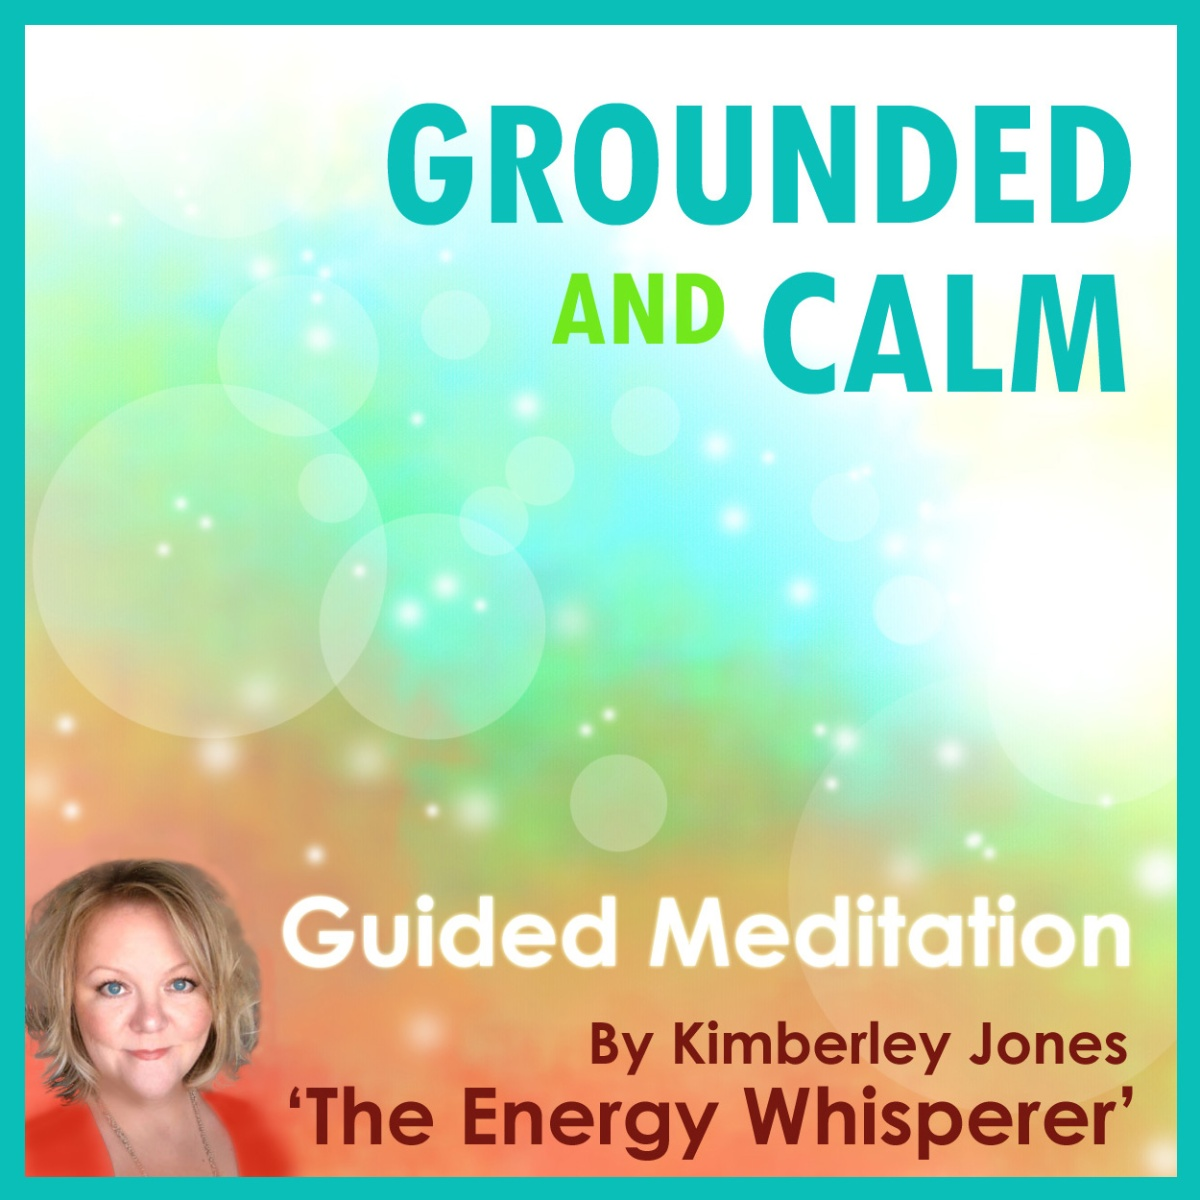 Grounded & Calm: A guided energy meditation